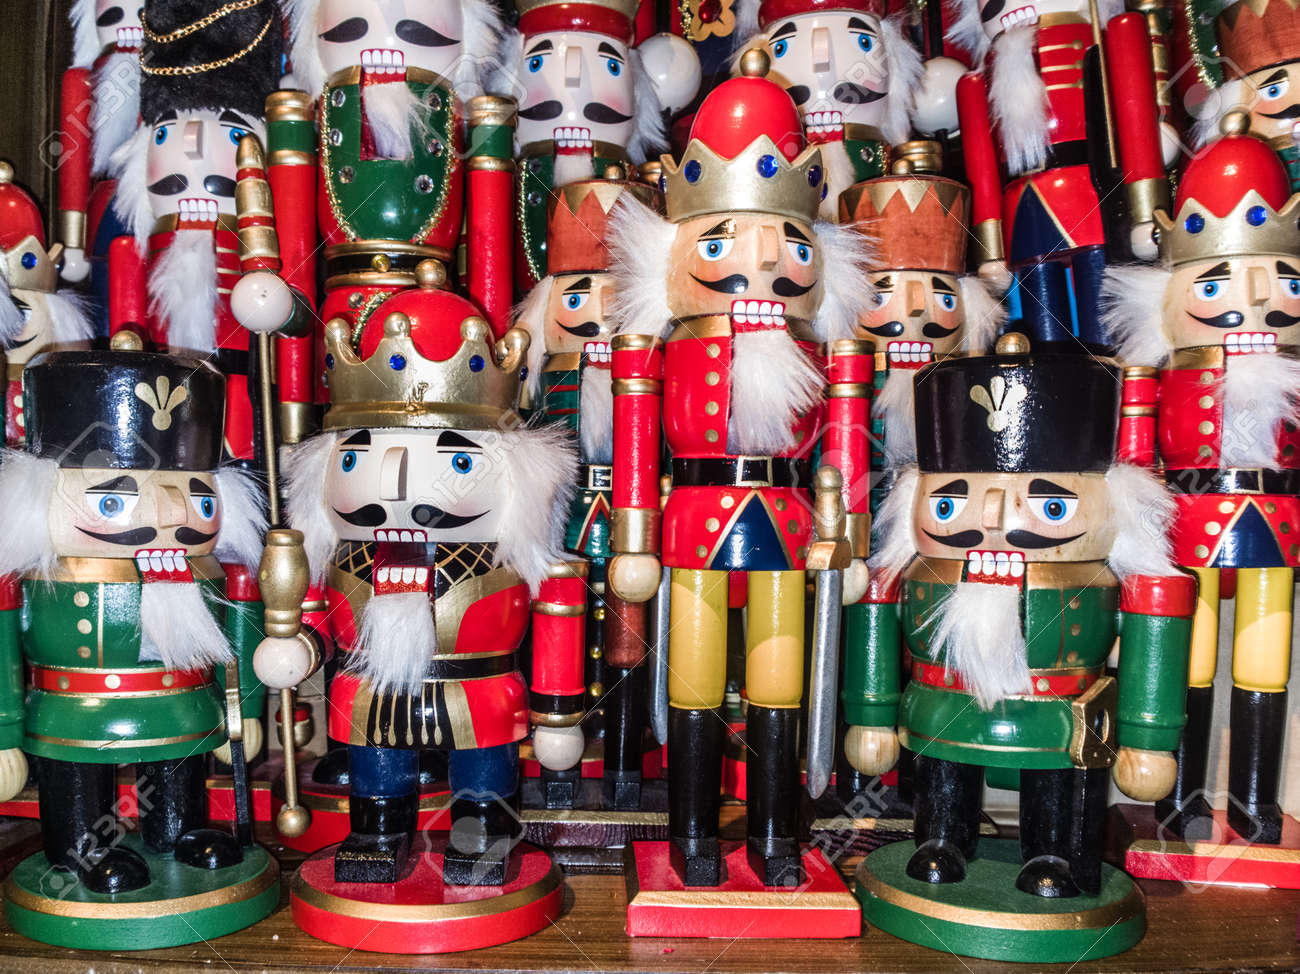 christmas nutcracker toy soldier collection various traditional christmas nutcrackers stand together as decoration stock photo